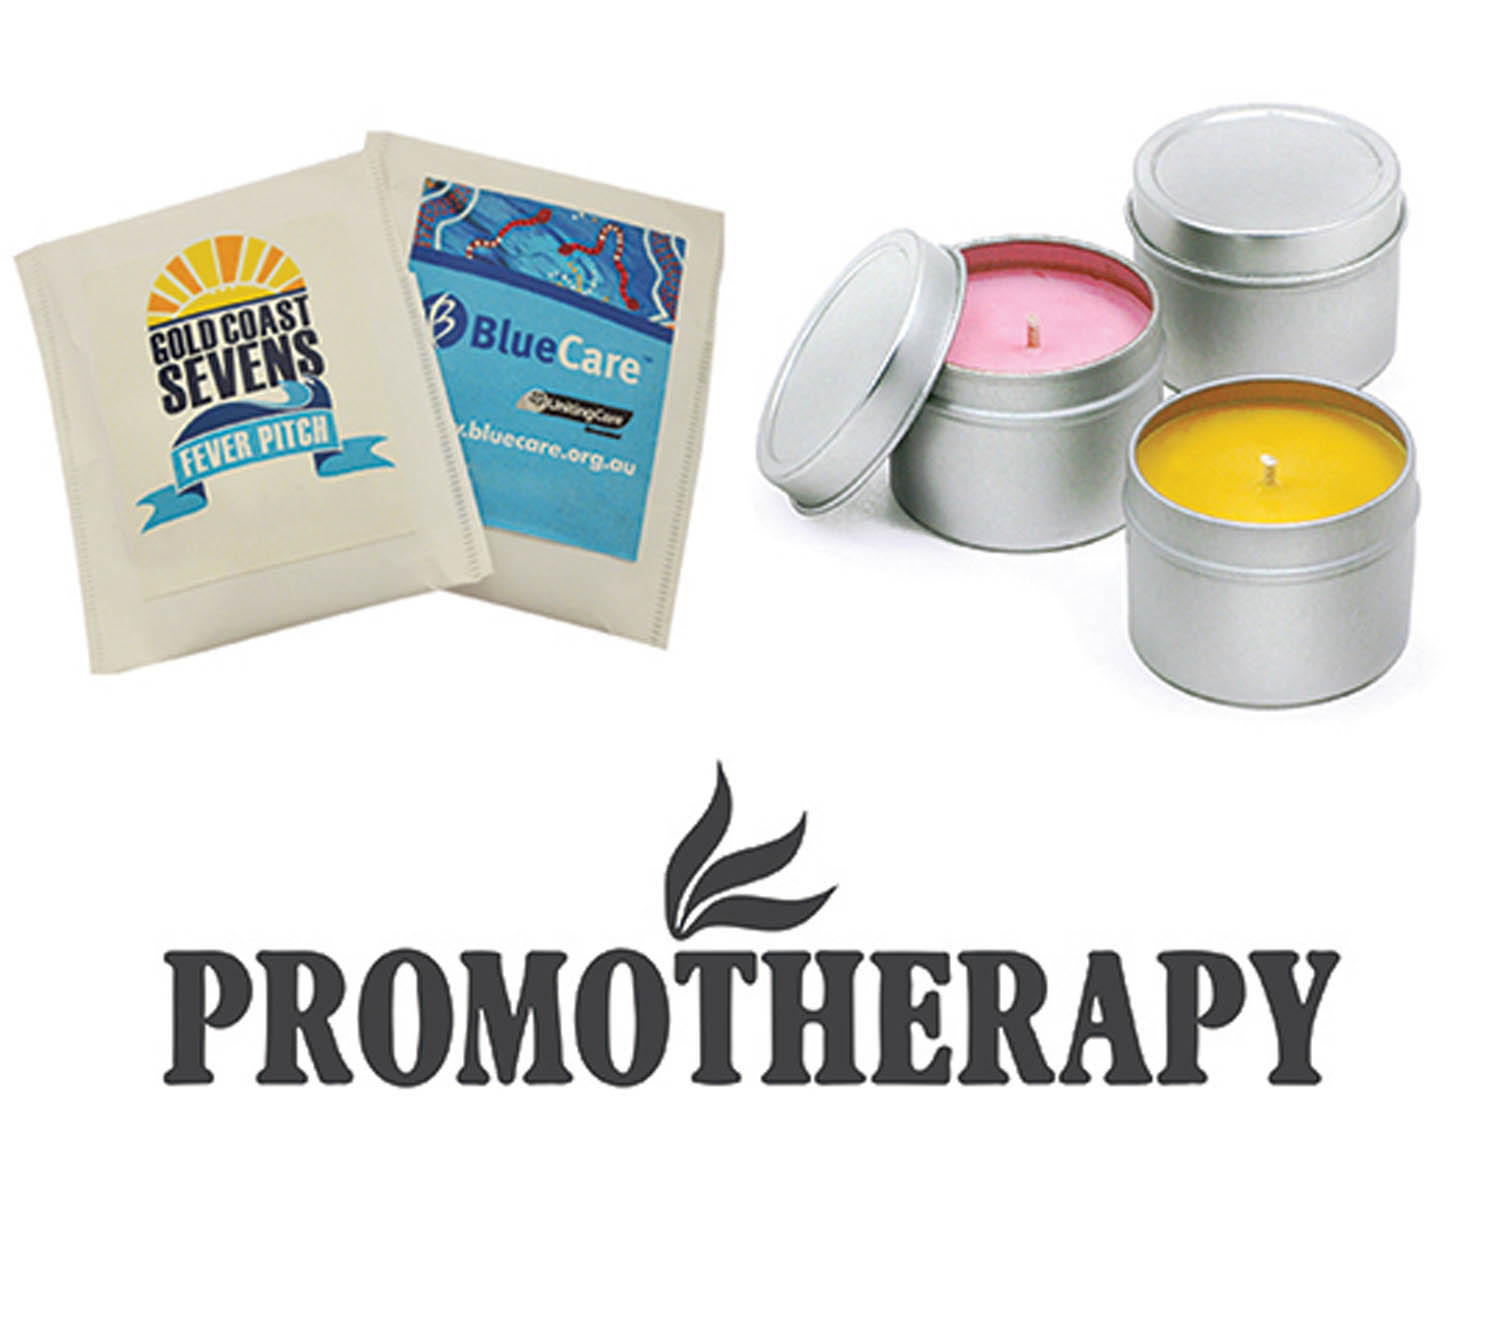 Promotherapy